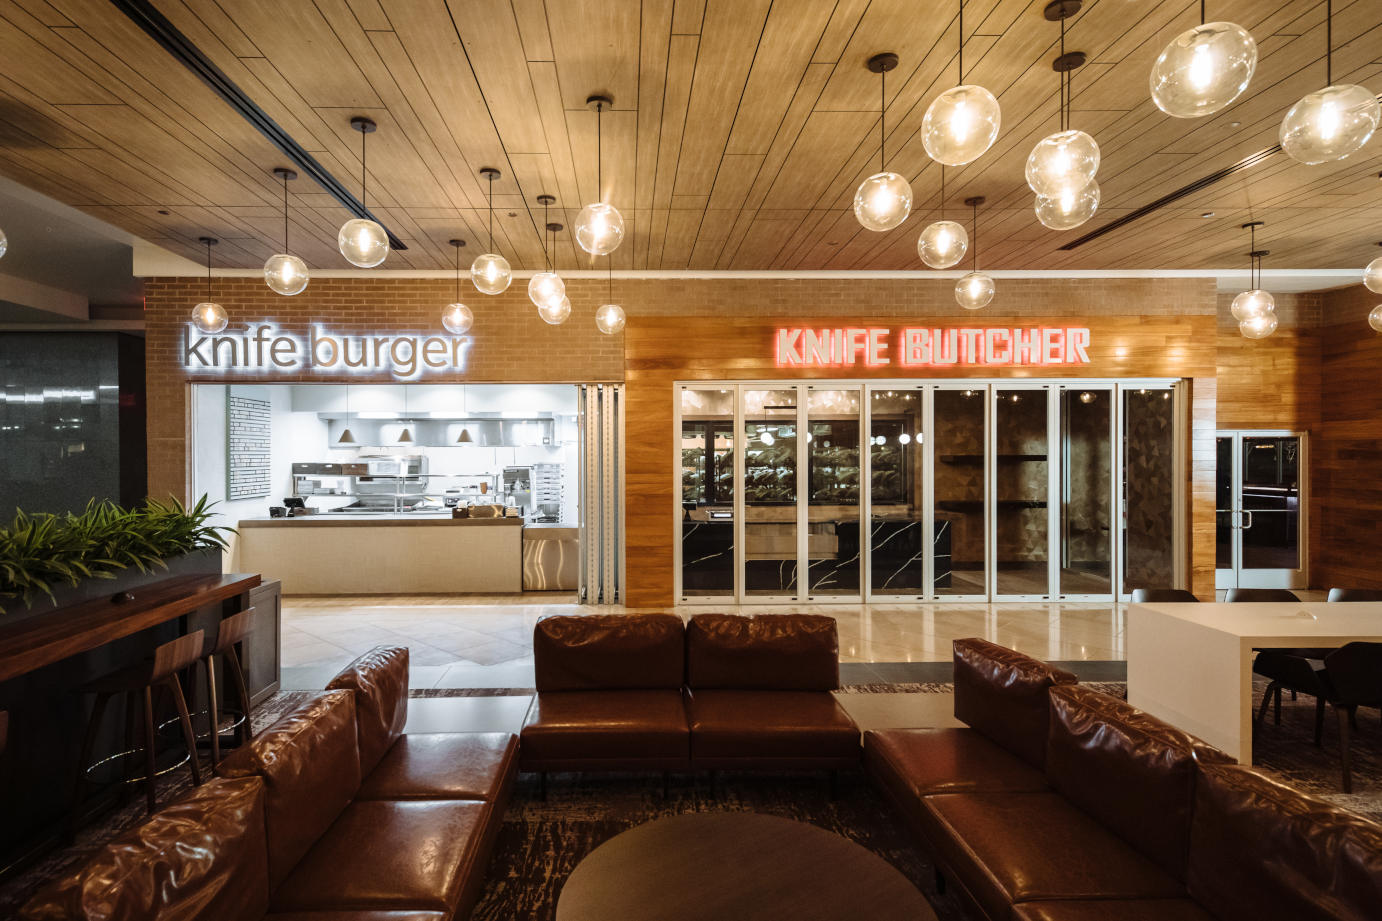 Knife Burger exterior